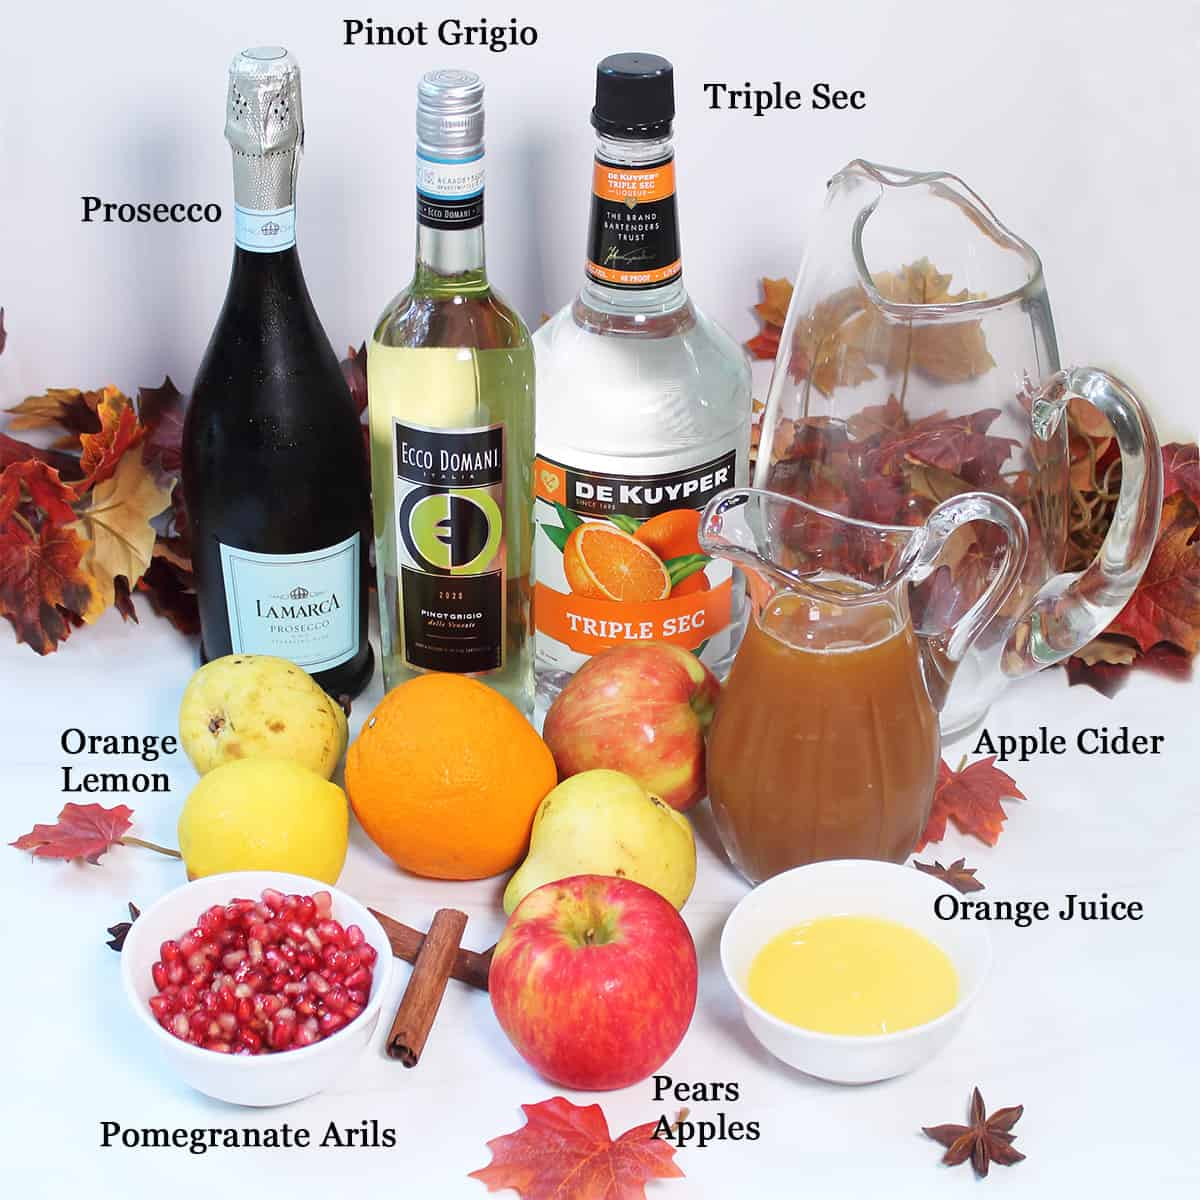 Ingredients for apple cider sangria on white table.